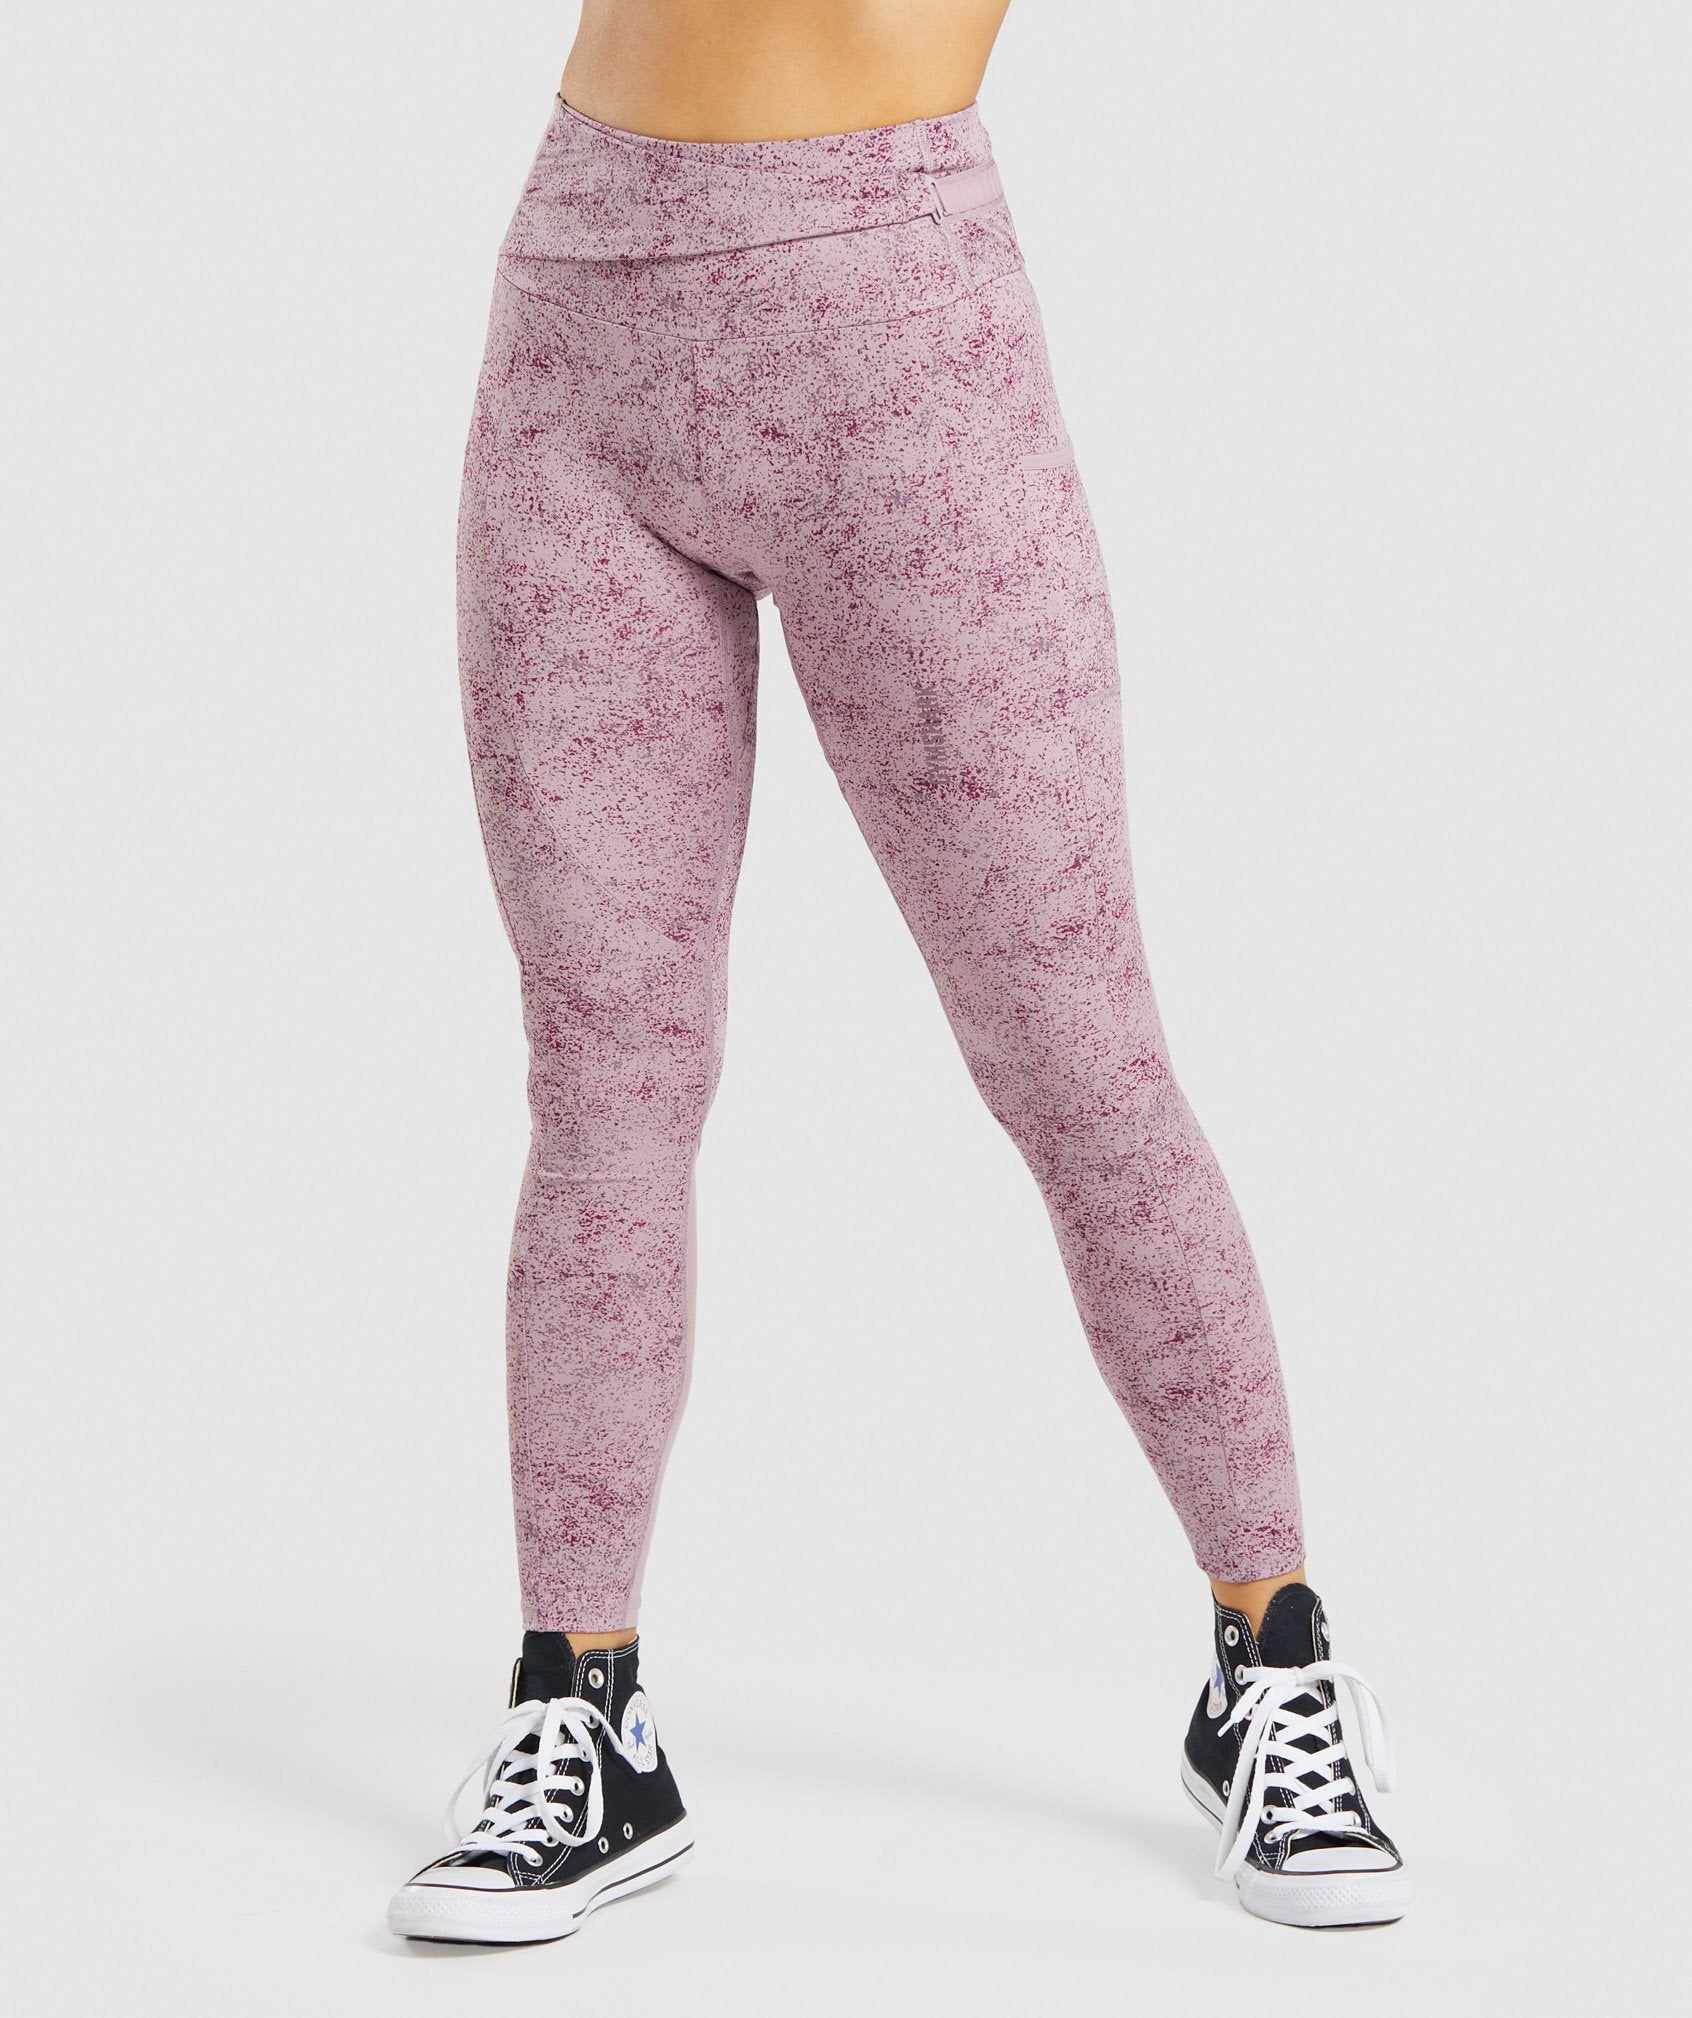 Classier: Buy Gymshark Chalk Leggings - Purple Print - Gymshark